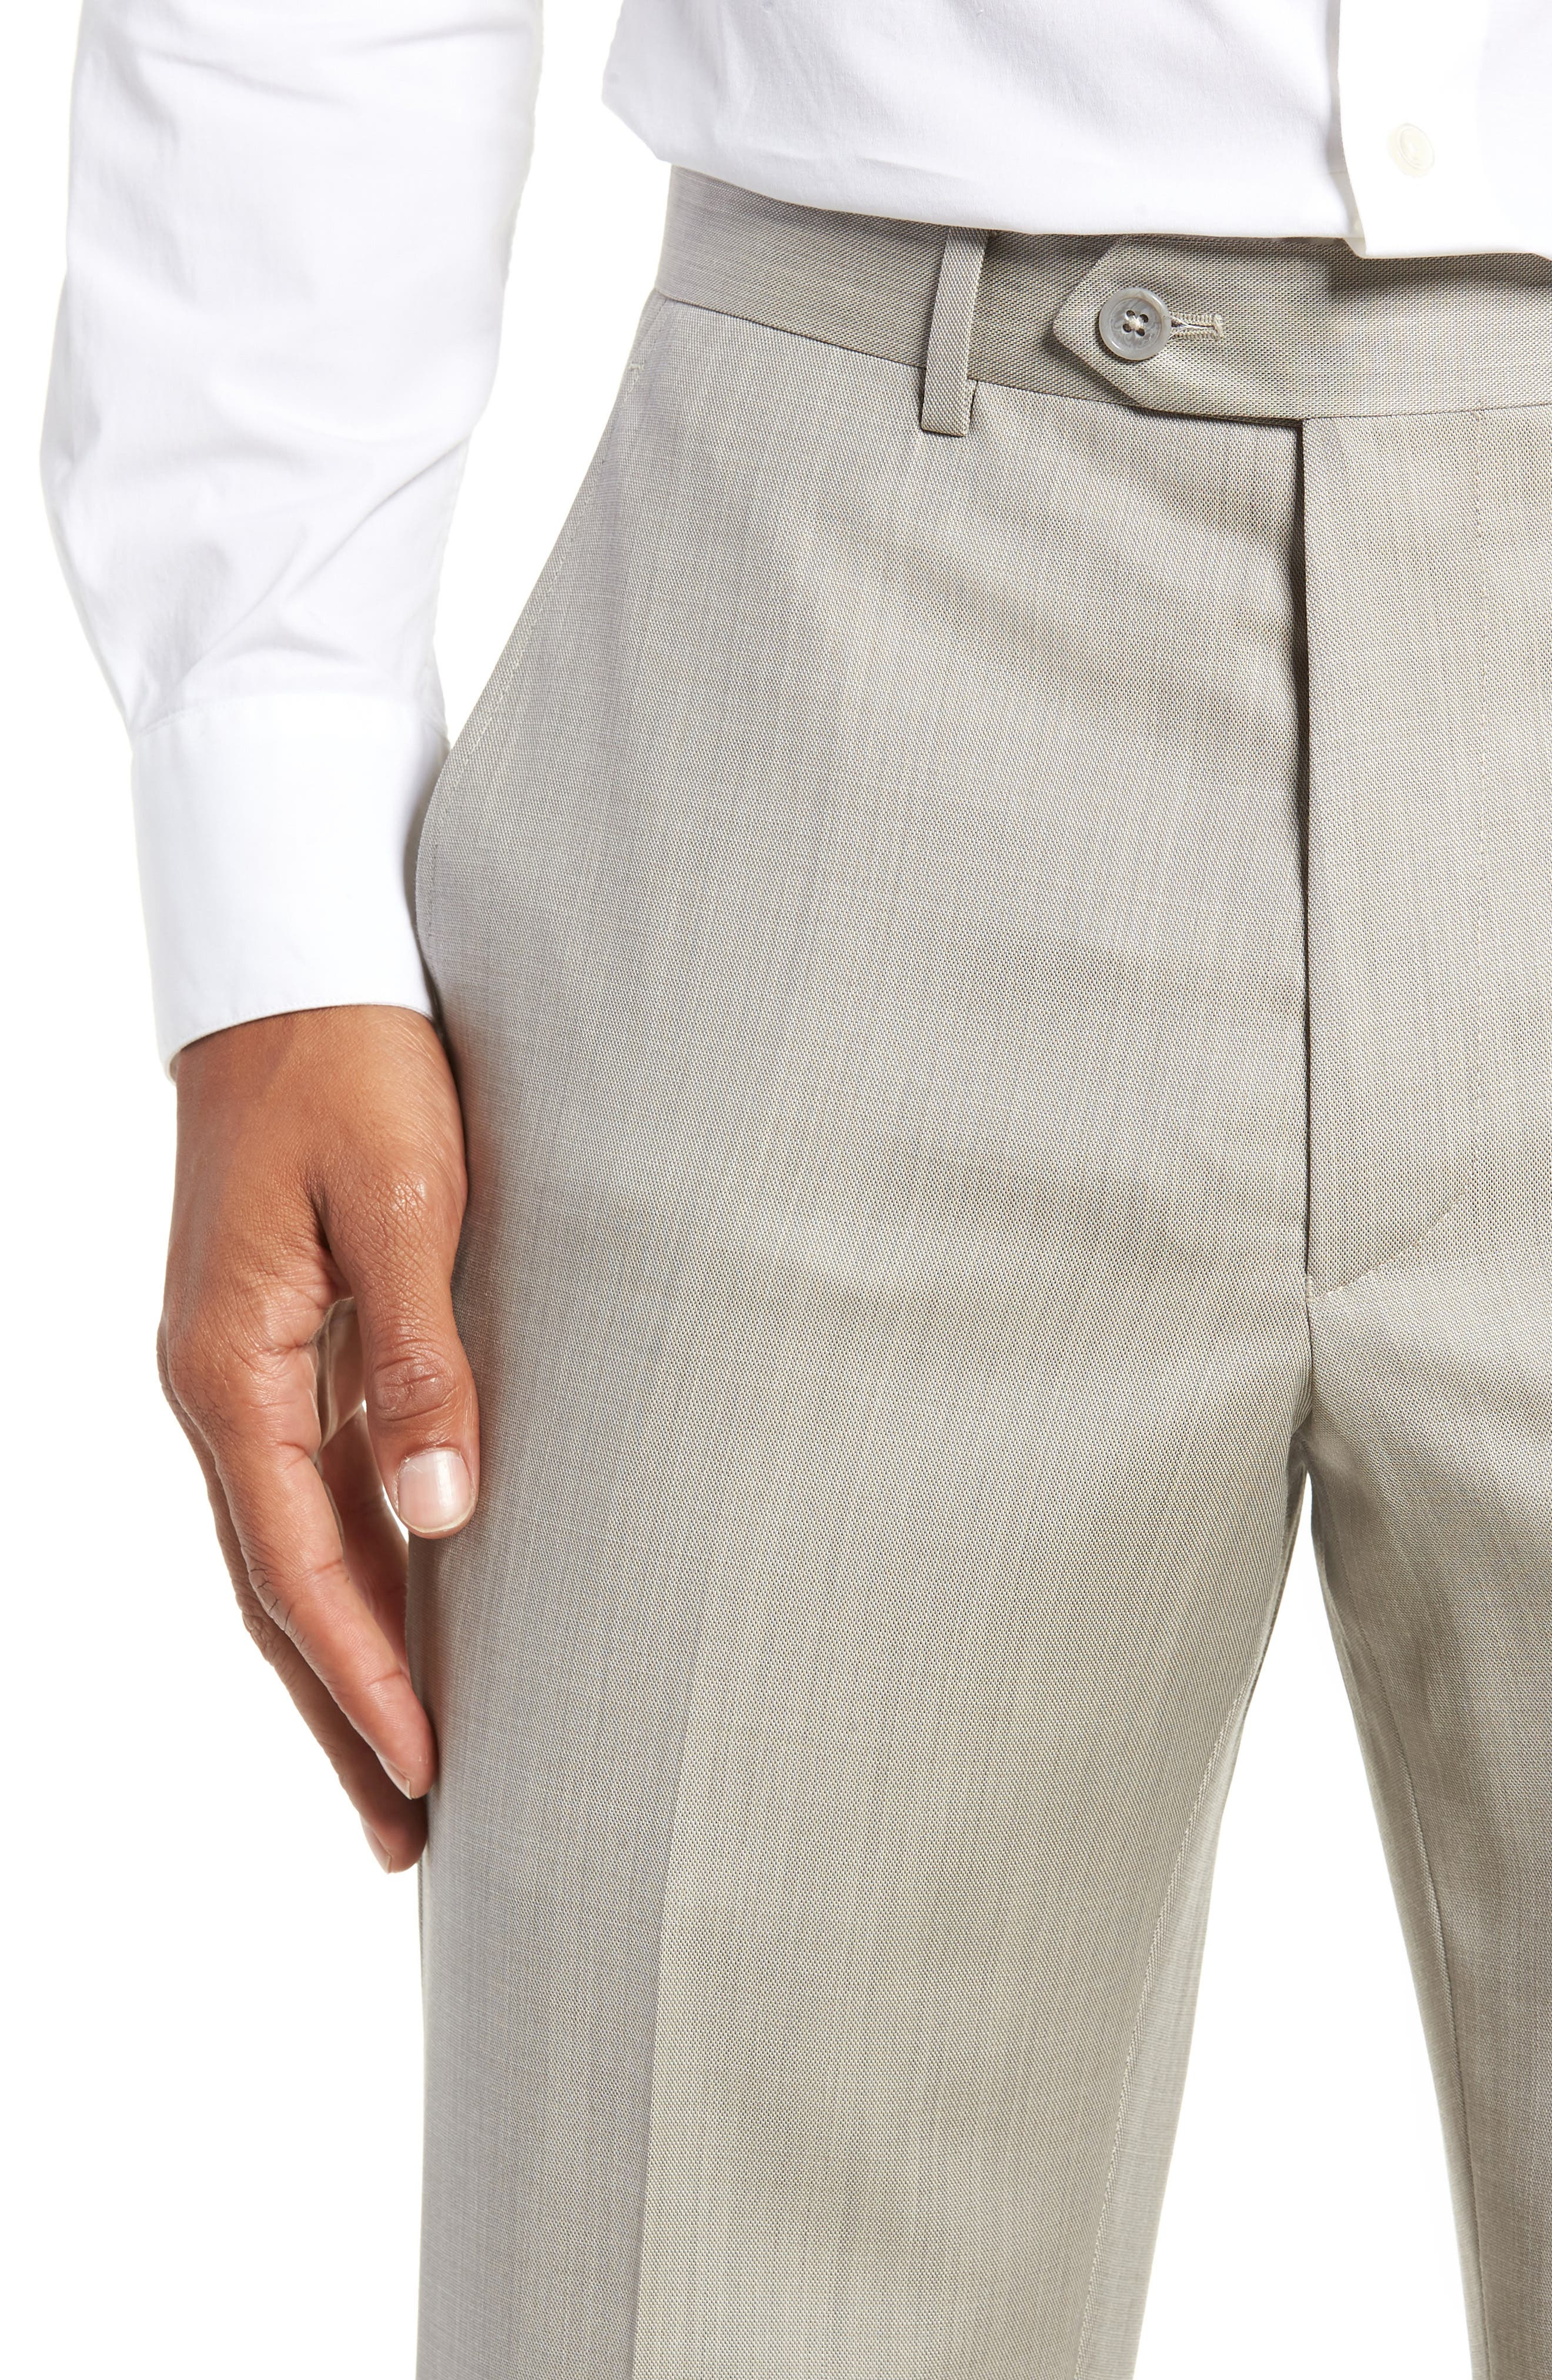 Flat Front Sharkskin Wool Trousers,                             Alternate thumbnail 4, color,                             SAND